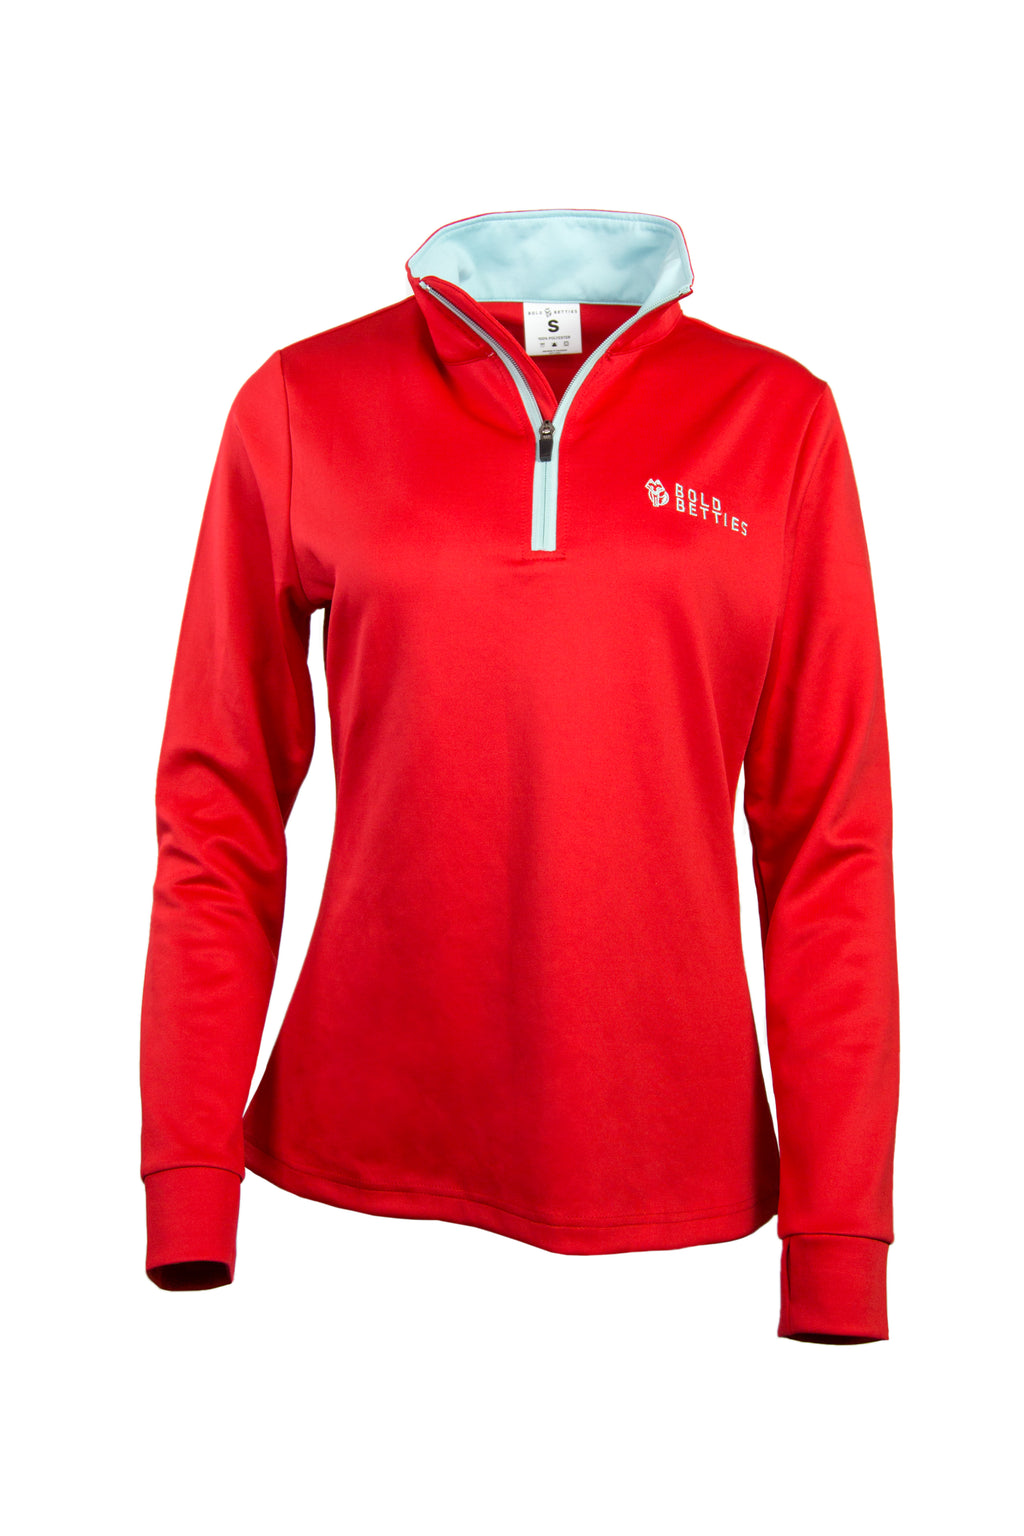 Bold Betties 1/4 Zip Pullover